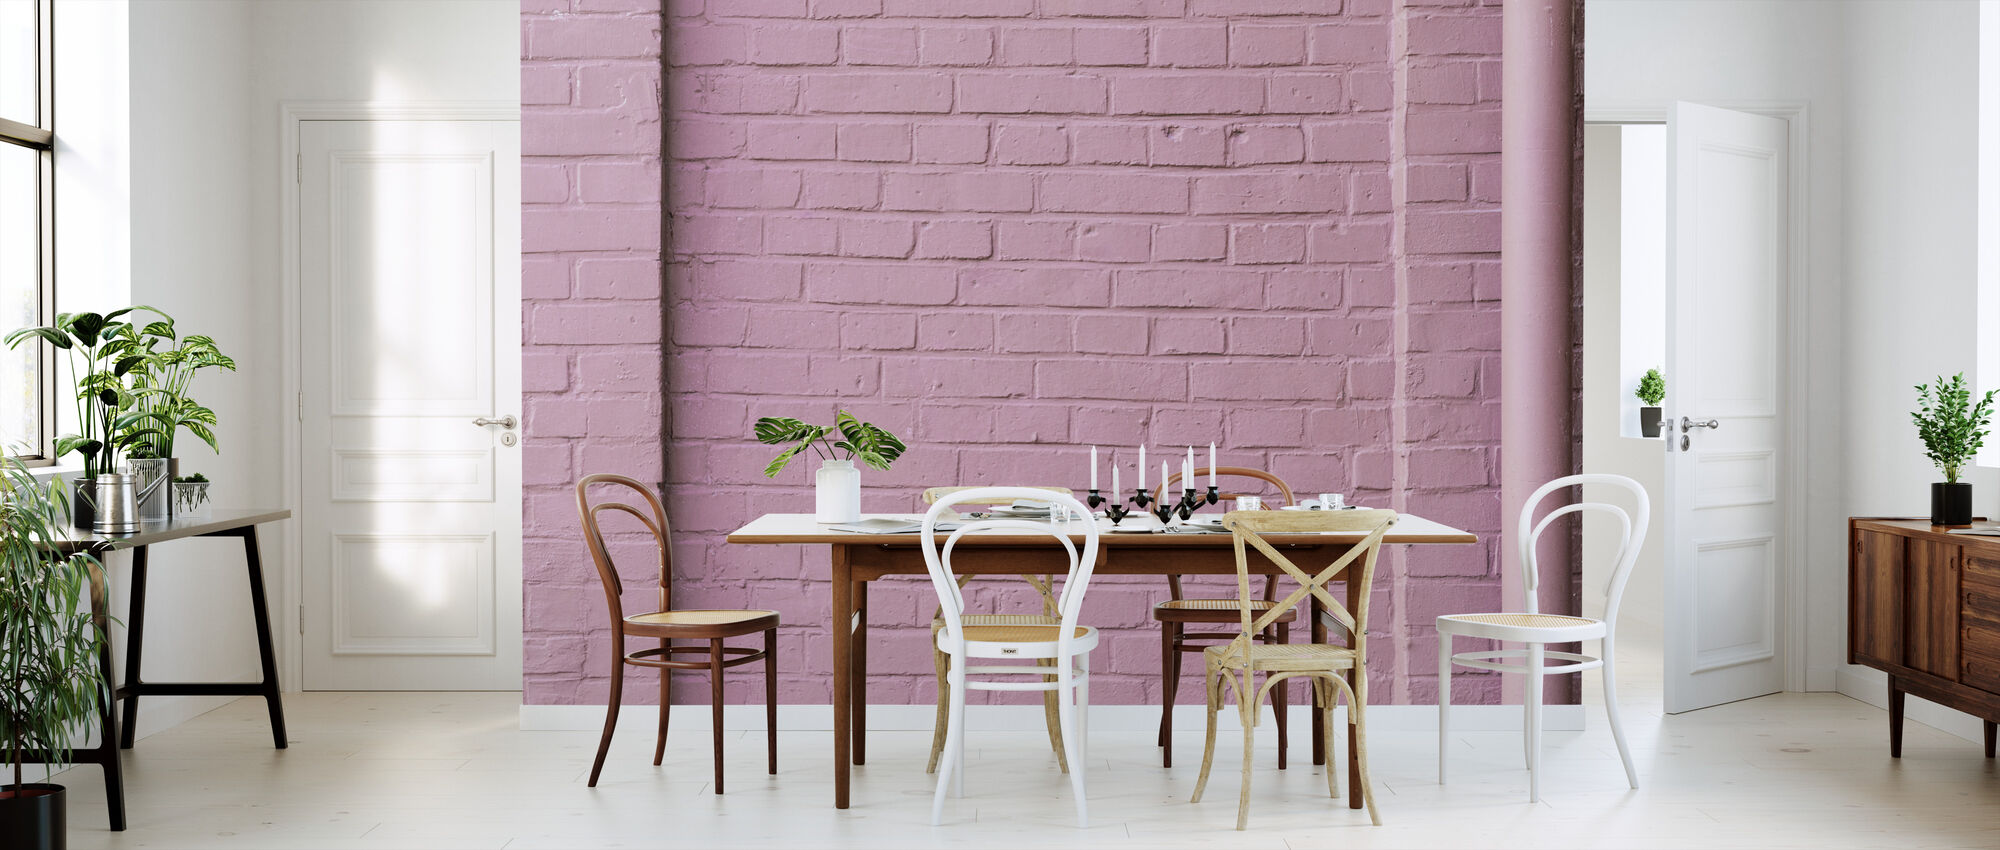 Pink Wall - Wallpaper - Kitchen